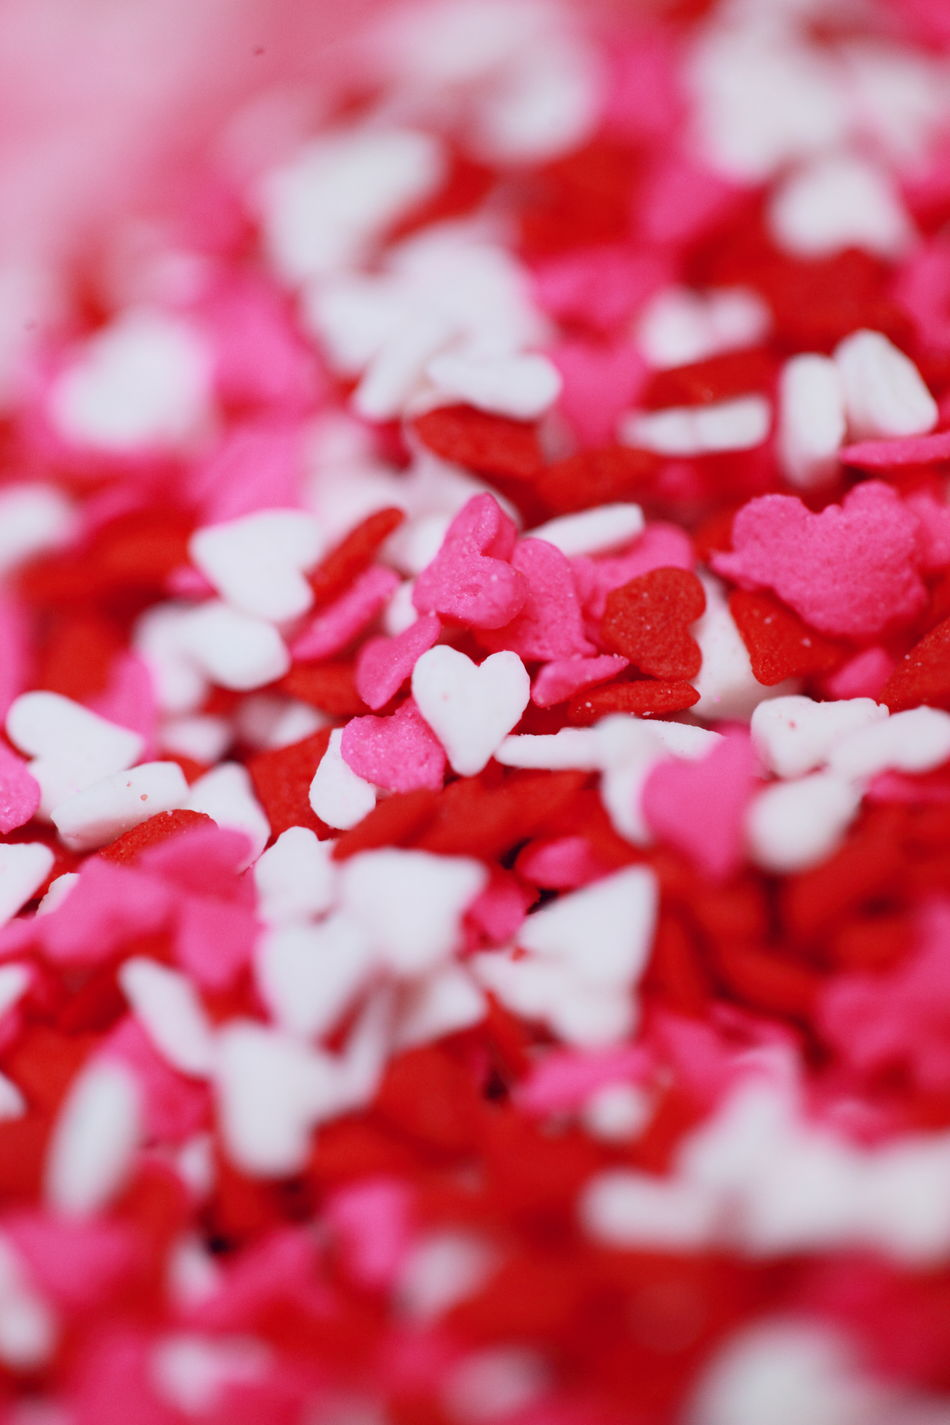 Macro of tiny heart shaped candies. Amor Amour Backgrounds Be Mine Candy Close-up Coeur  Colorful Corazón Food Food And Drink Full Frame Heart Hearts Love Macro Pink Red Romance Romantic Sweet Valentine Valentine's Day